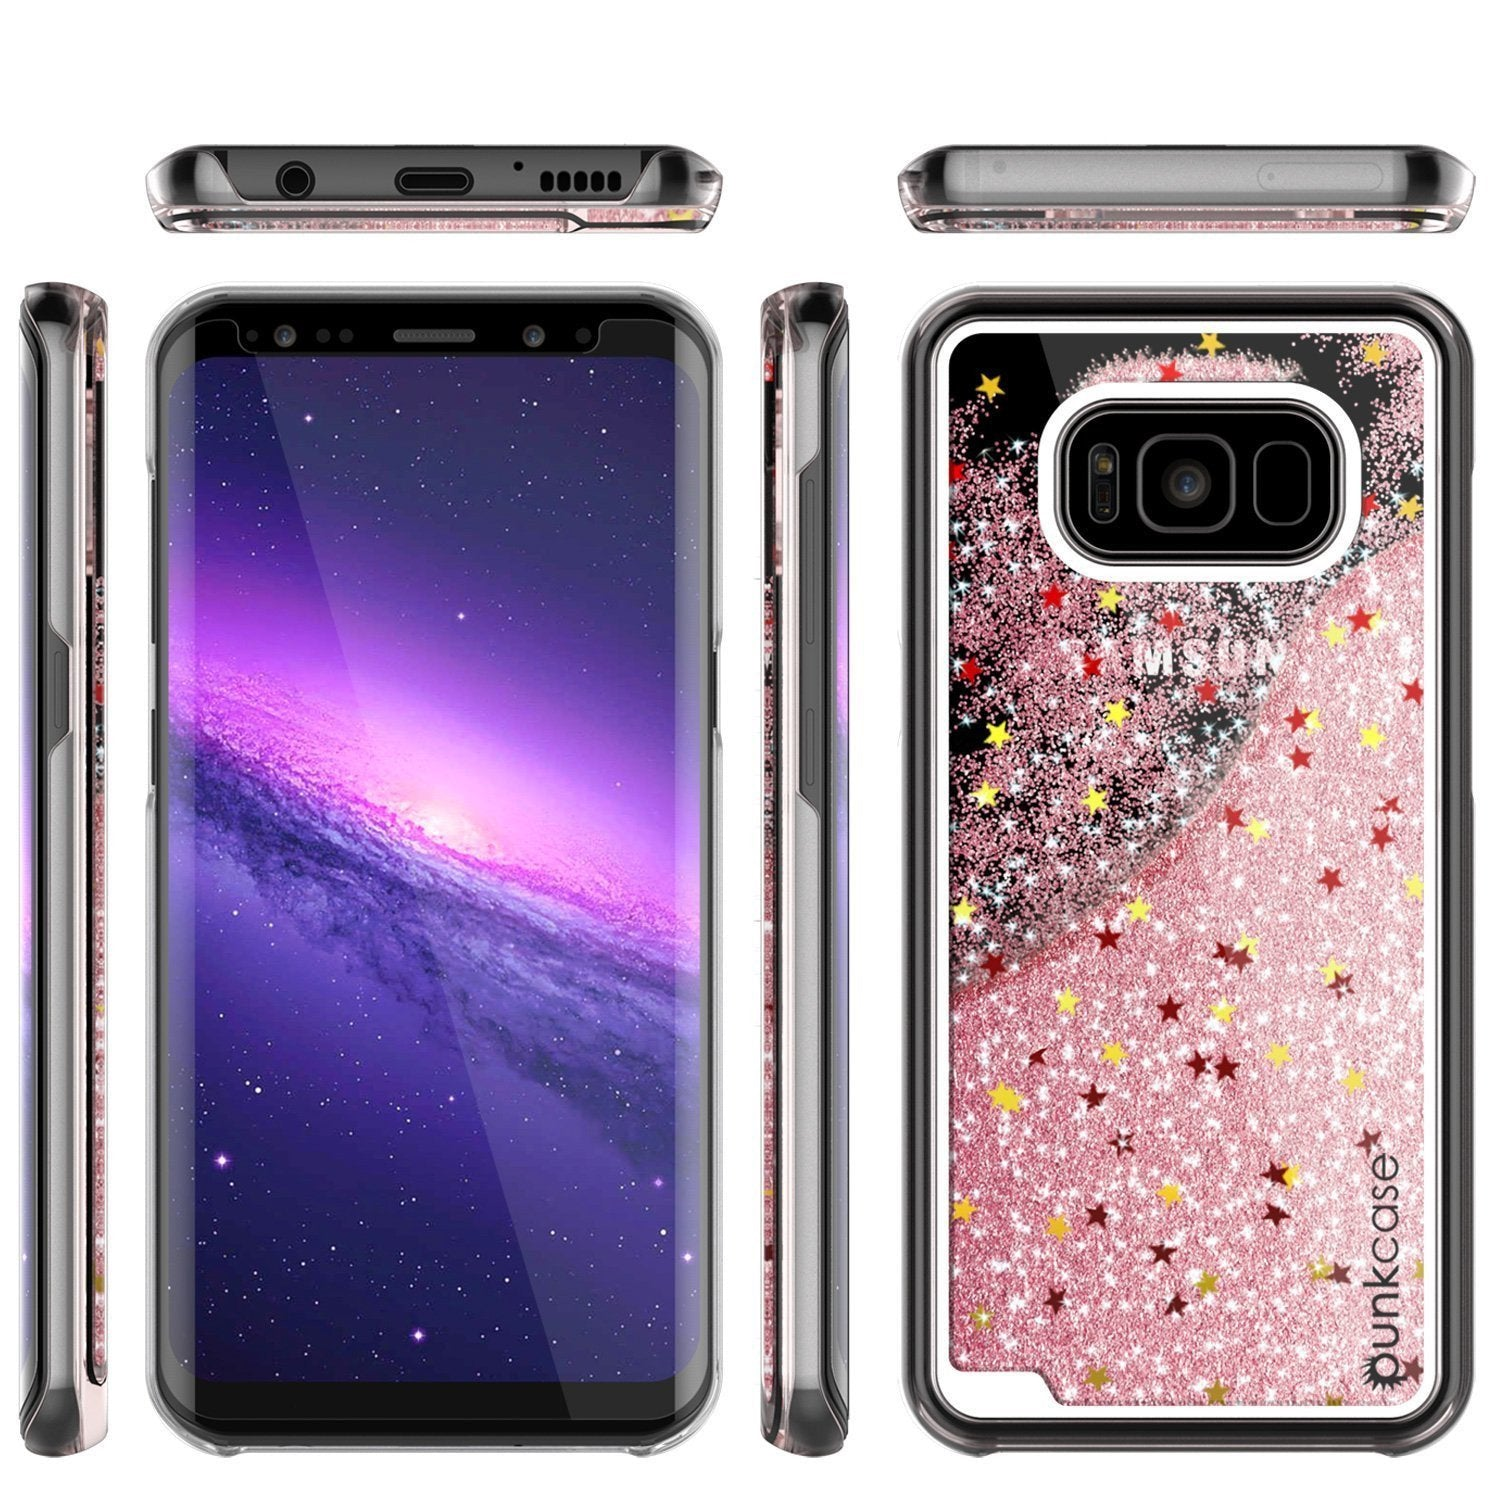 S8 Plus Case, Punkcase [Liquid Series] Protective Dual Layer Floating Glitter Cover with lots of Bling & Sparkle + PunkShield Screen Protector for Samsungs Galaxy S8+ [Rose Gold] - PunkCase NZ